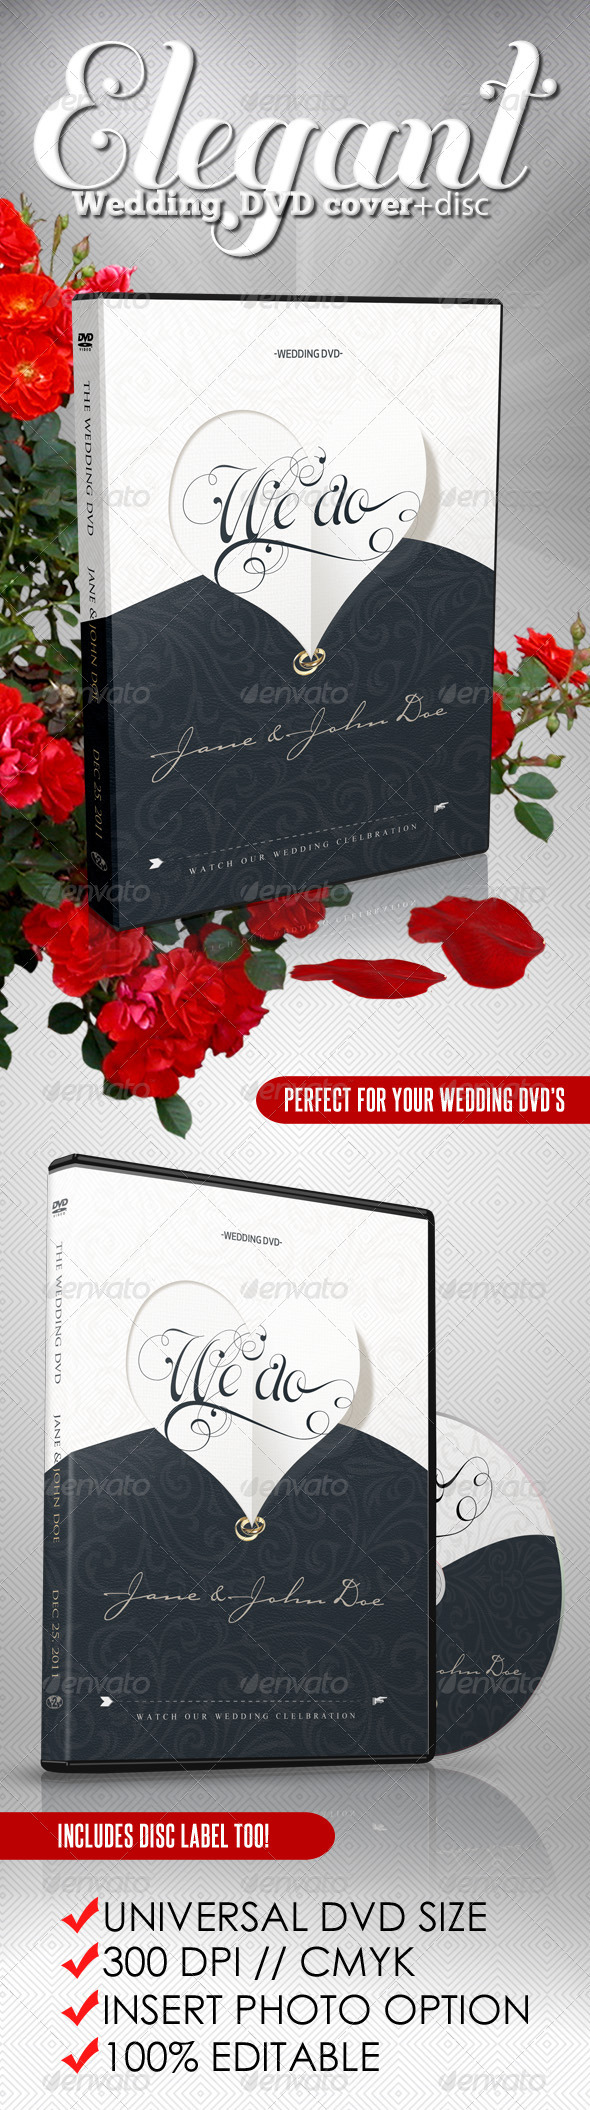 Elegant Wedding DVD Covers and Disc Label - CD & DVD Artwork Print Templates